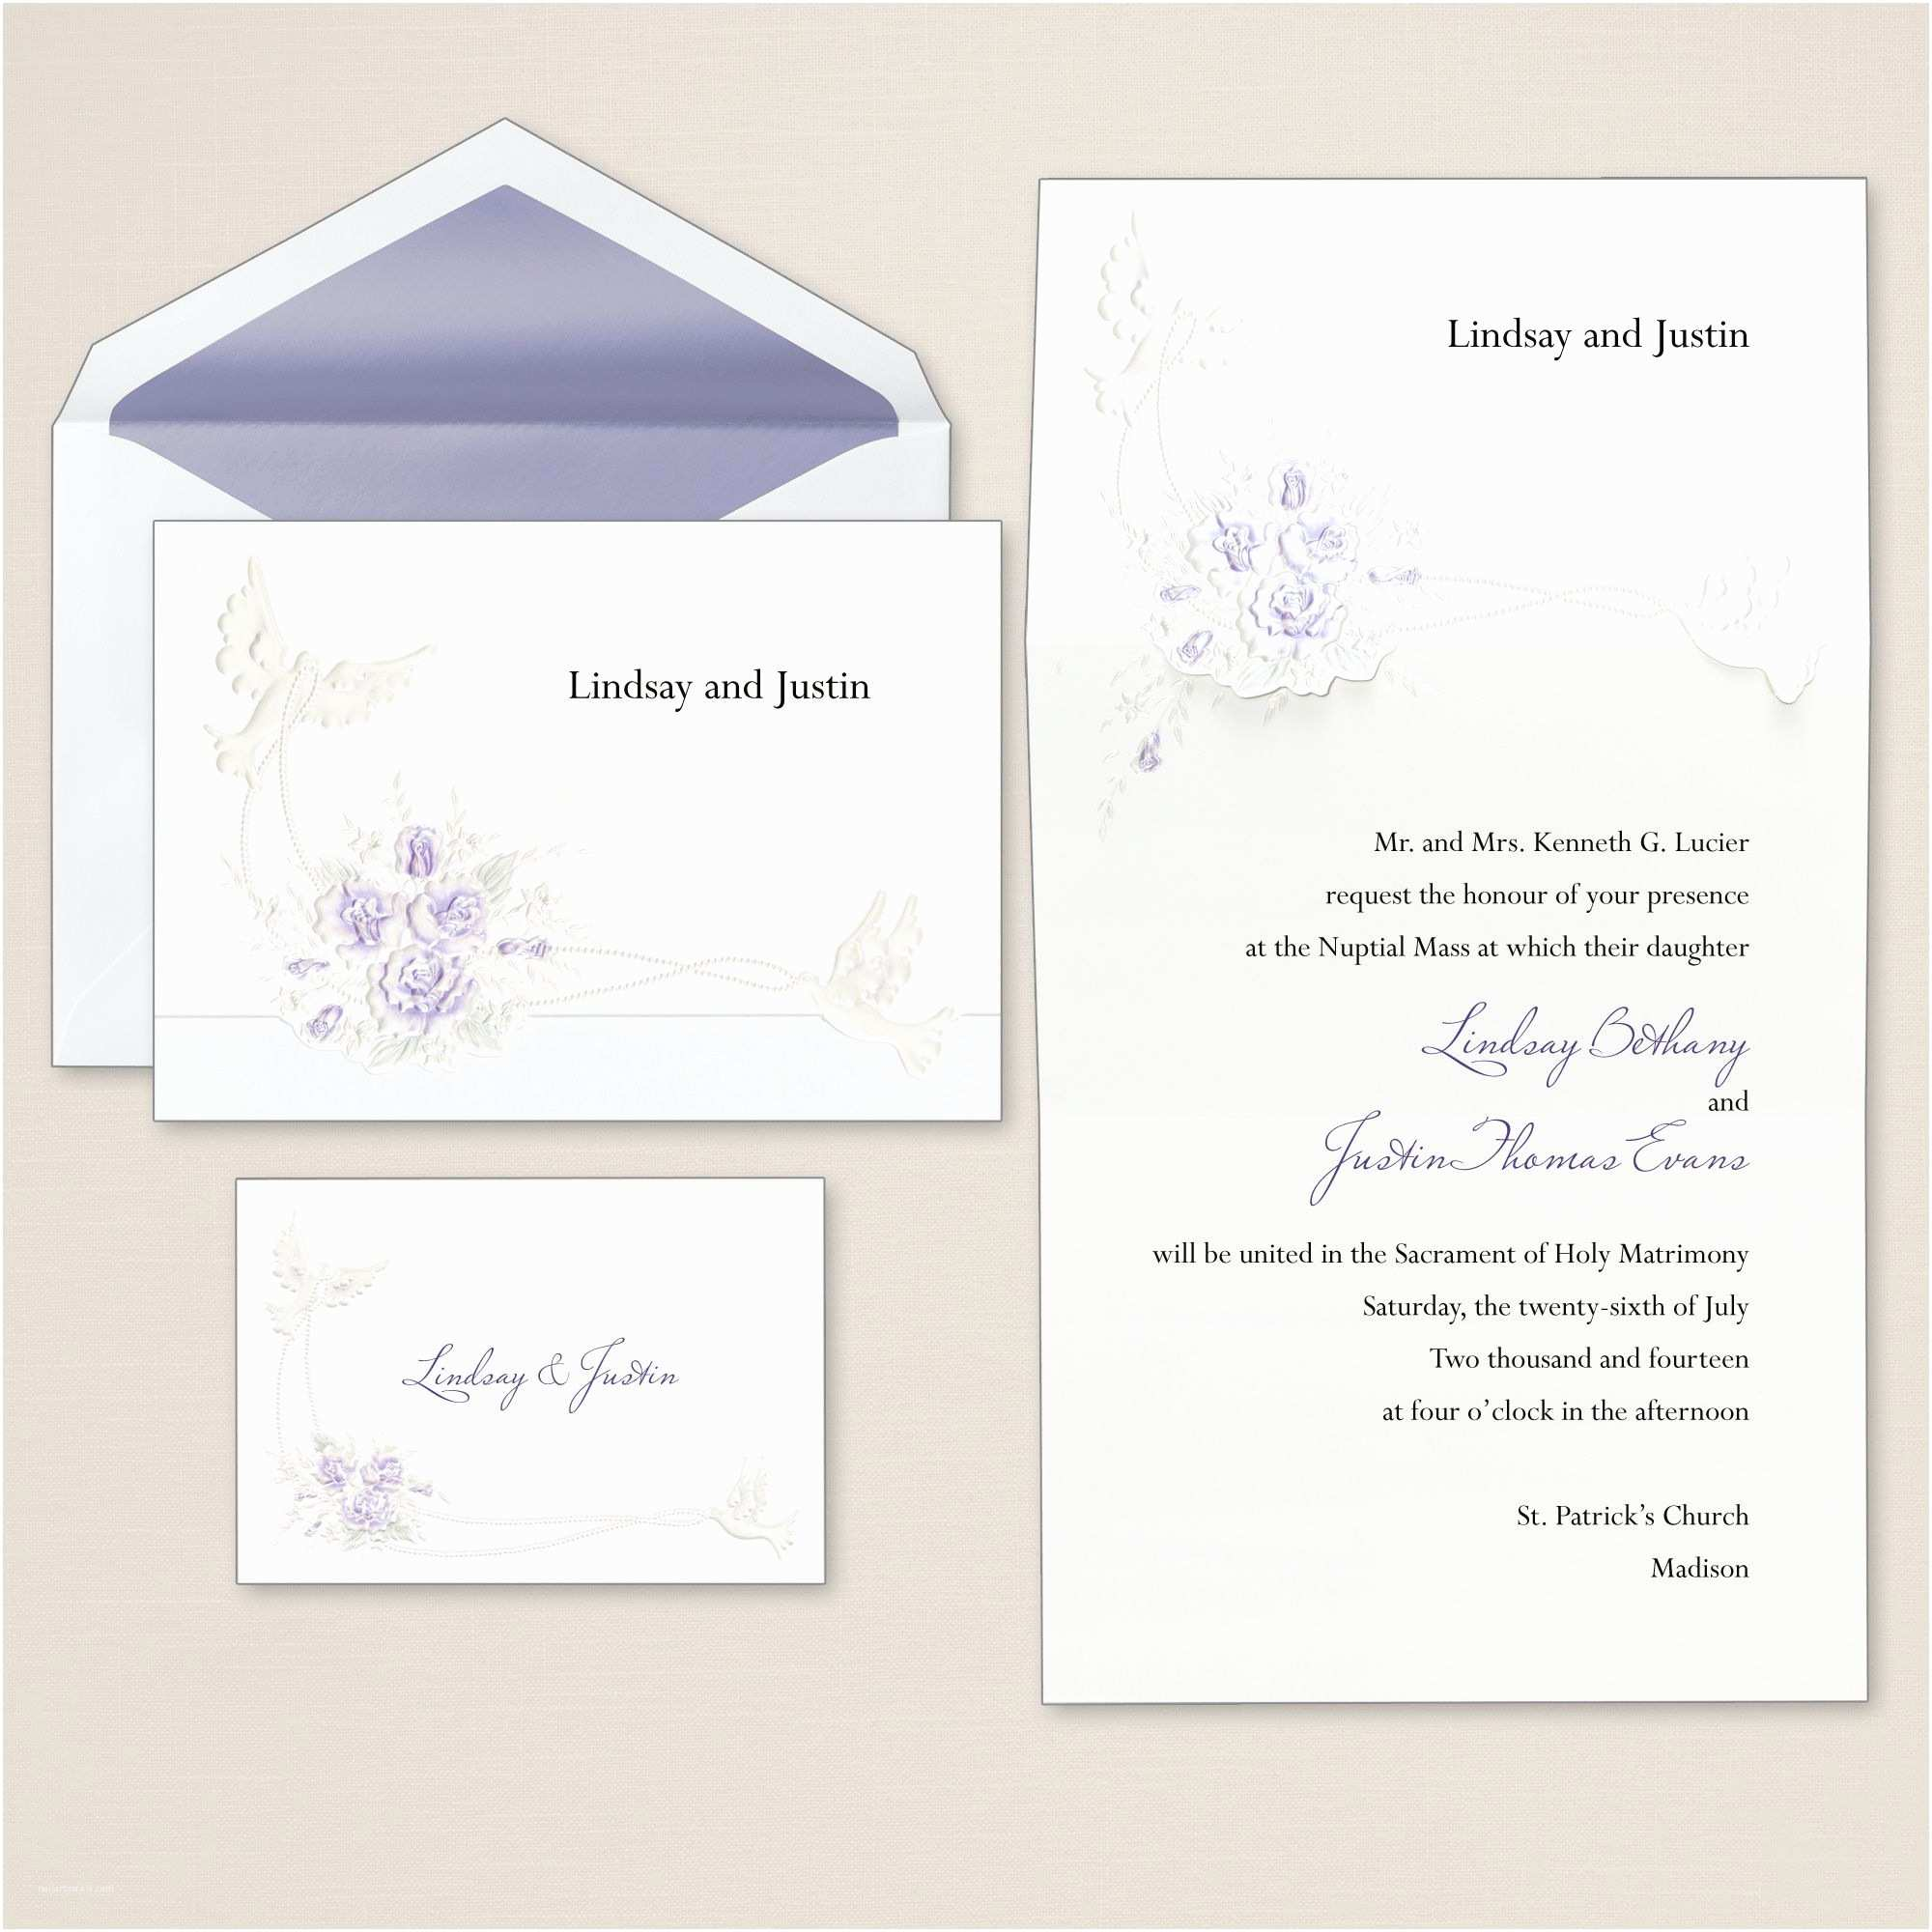 Response Card for Wedding Invitation Wording Wedding Invitations Response Cards Wedding Invitations